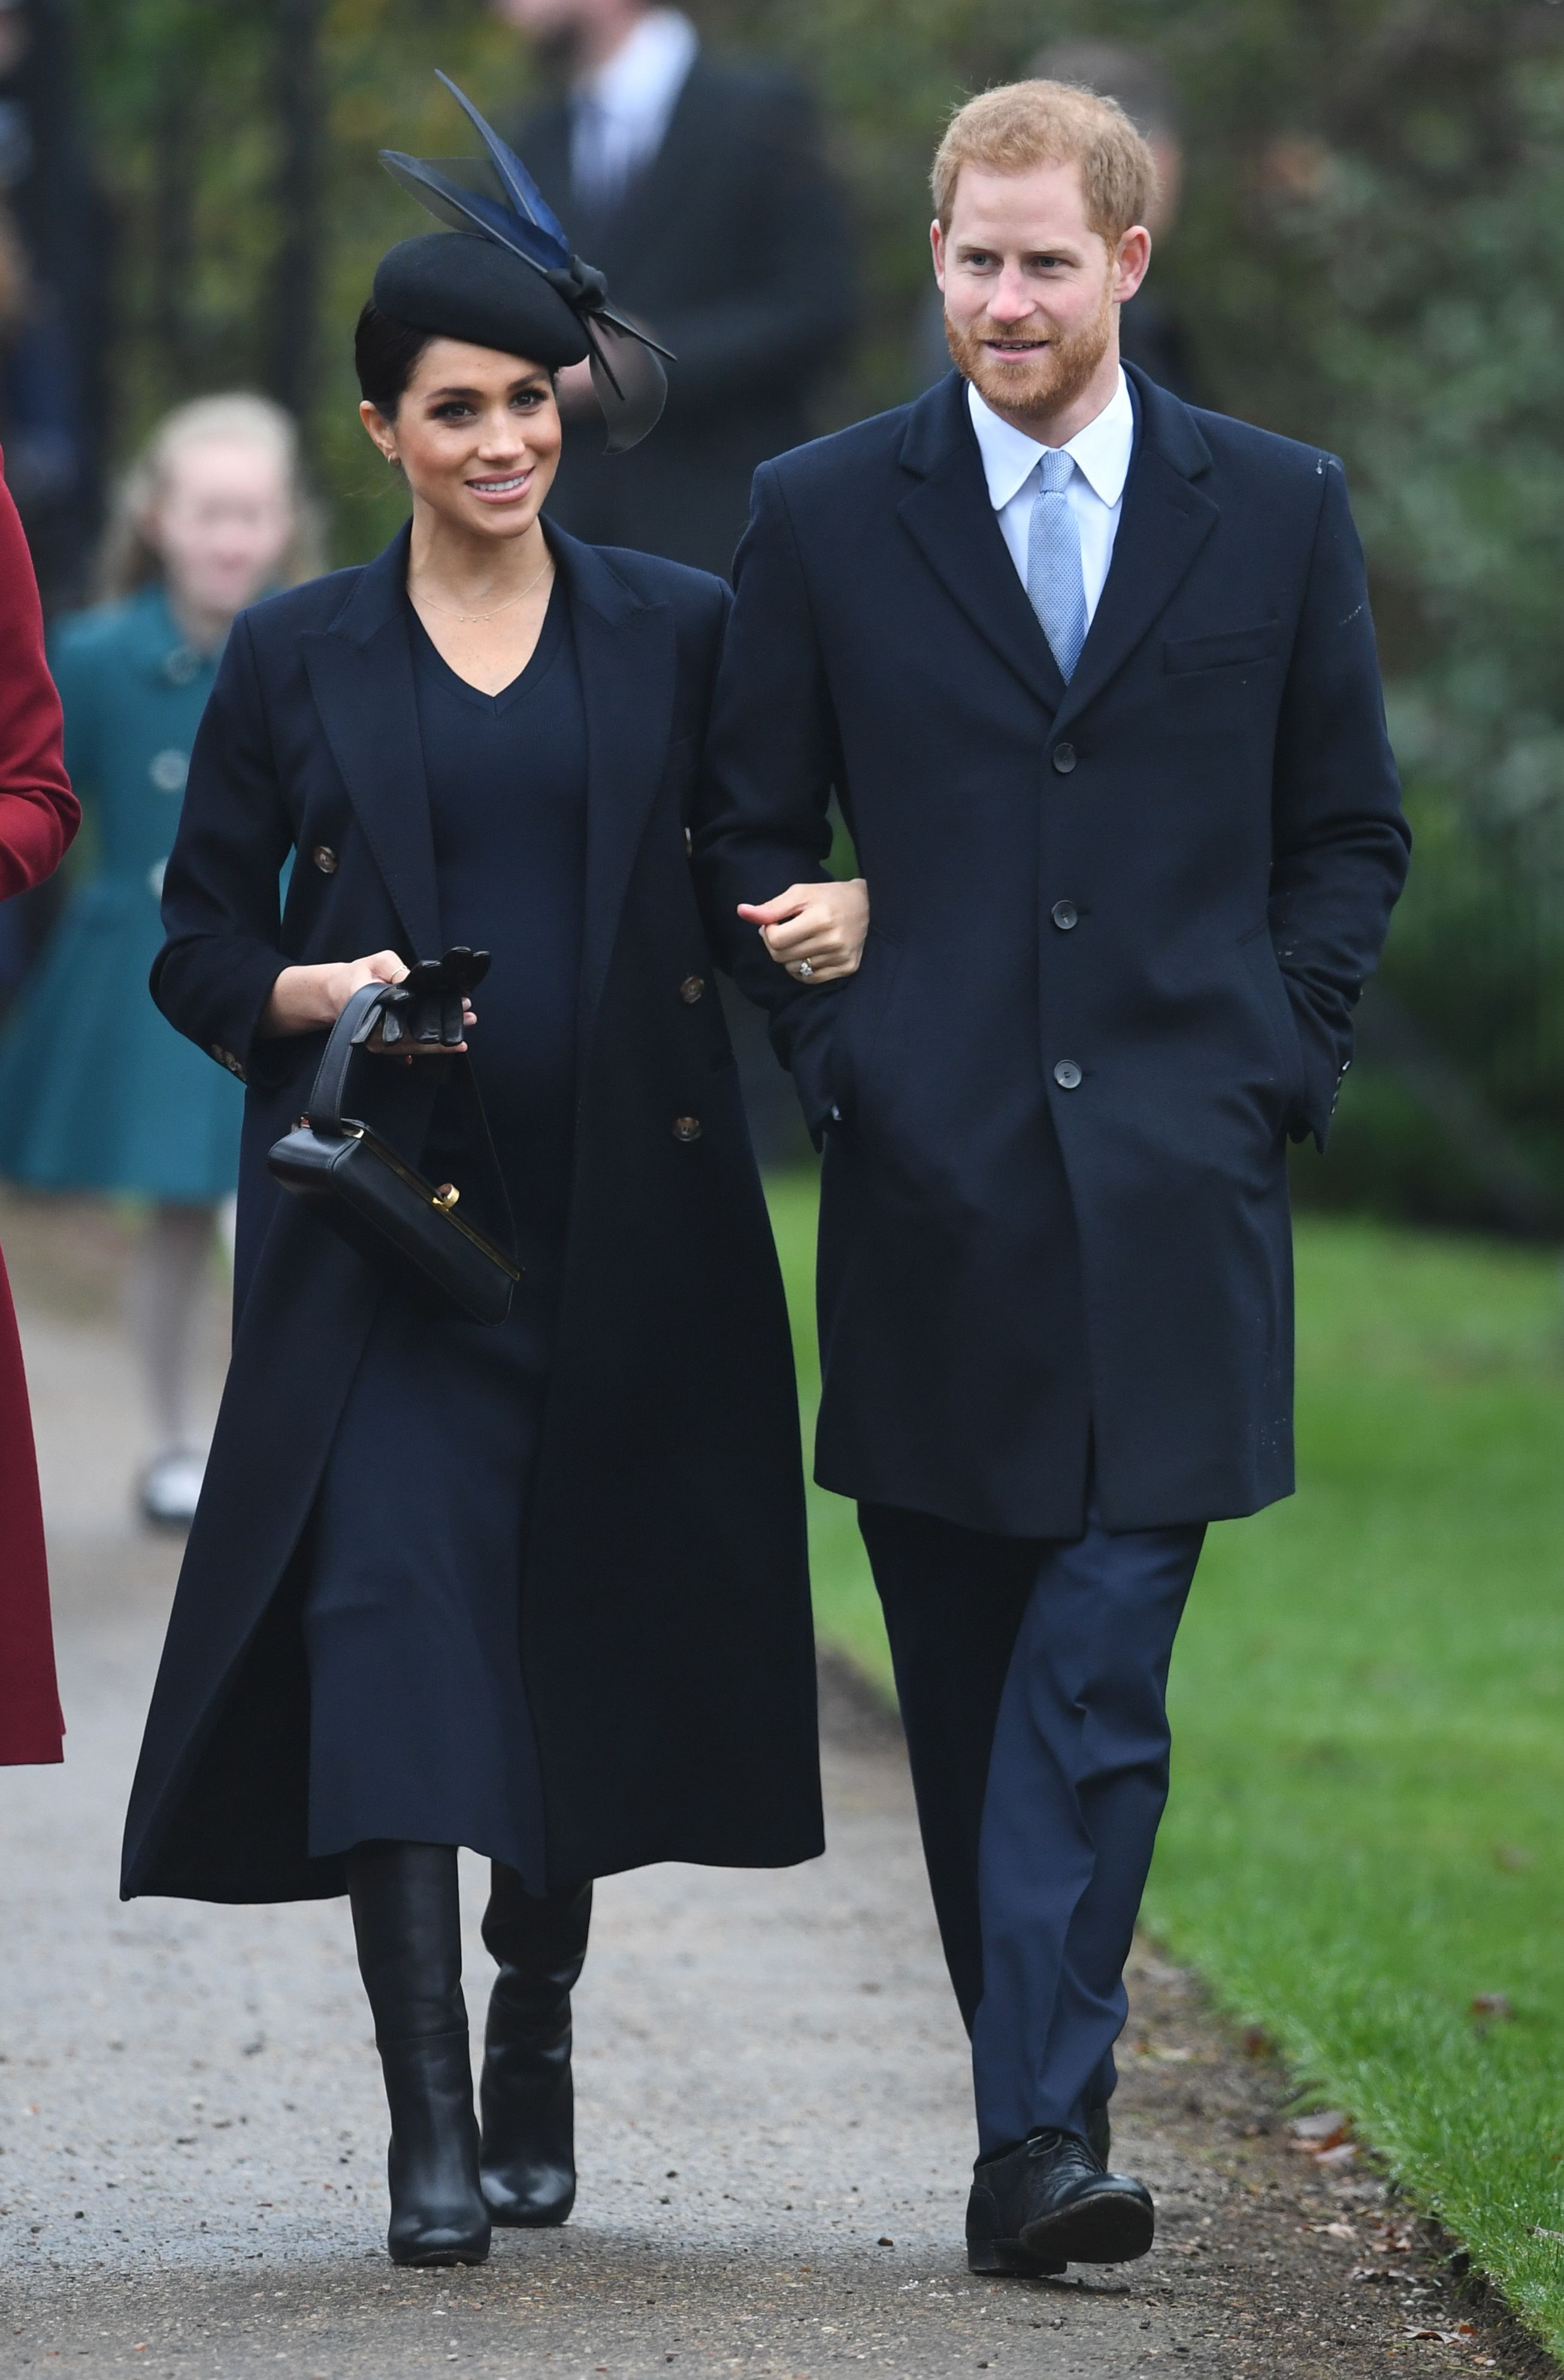 Harry and Meghan joined the rest of the royal family for church on Christmas Day in Sandringham . The Duchess wore a navy coat and dress by Victoria Beckham with a Philip Treacy hat and matching boots.